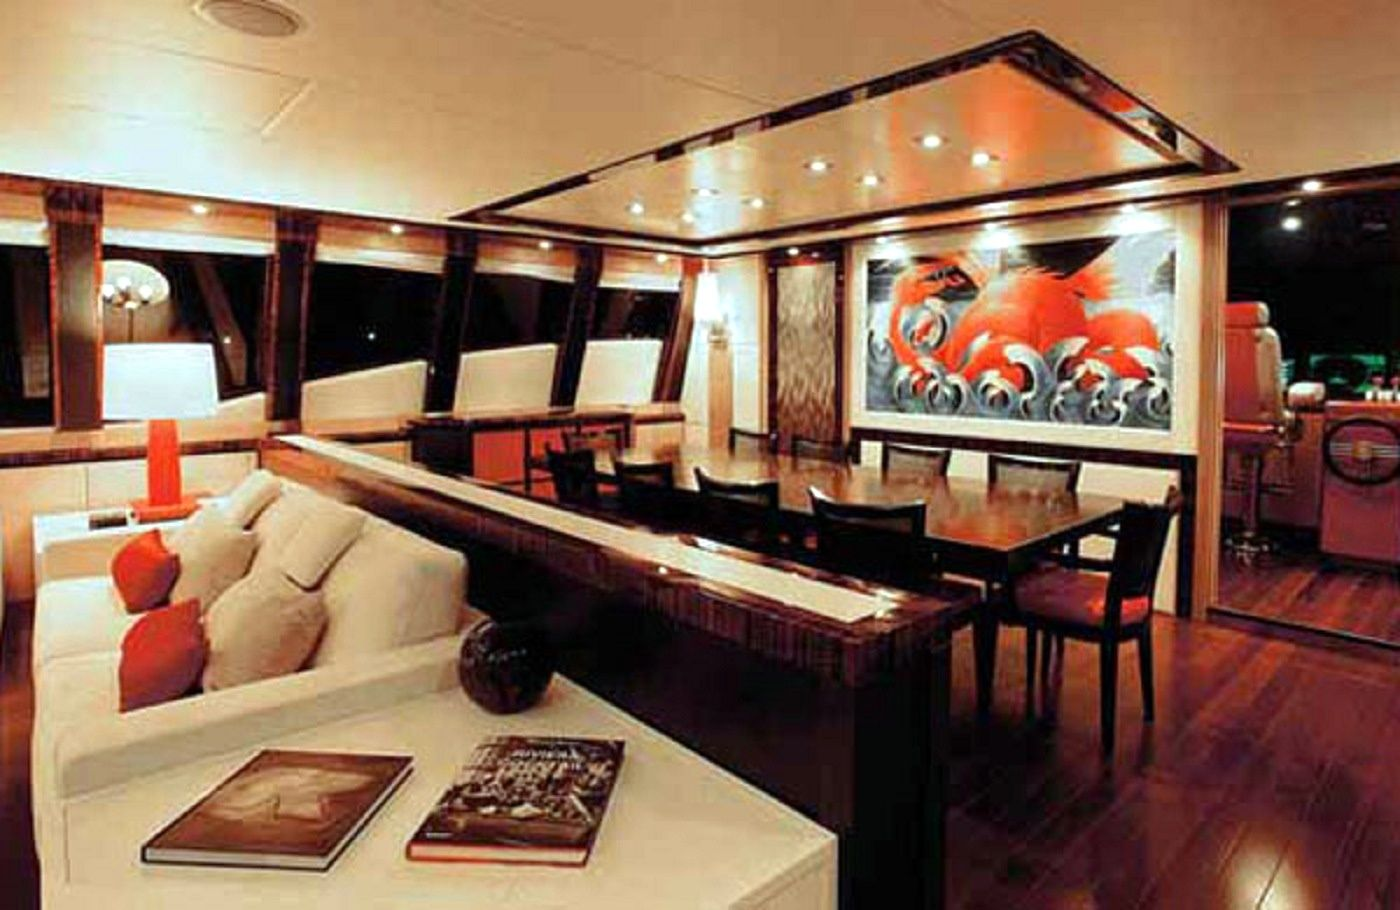 Octopus Yacht //sale-ships.com/octopus-yacht/ | Luxurious ... on bristle worm home, giraffe home, duck home, turtle home, frog home, rabbit home, wolf home, cuttlefish home, dragon home, caterpillar home, fish home, lizard home, dubai home, squid home,